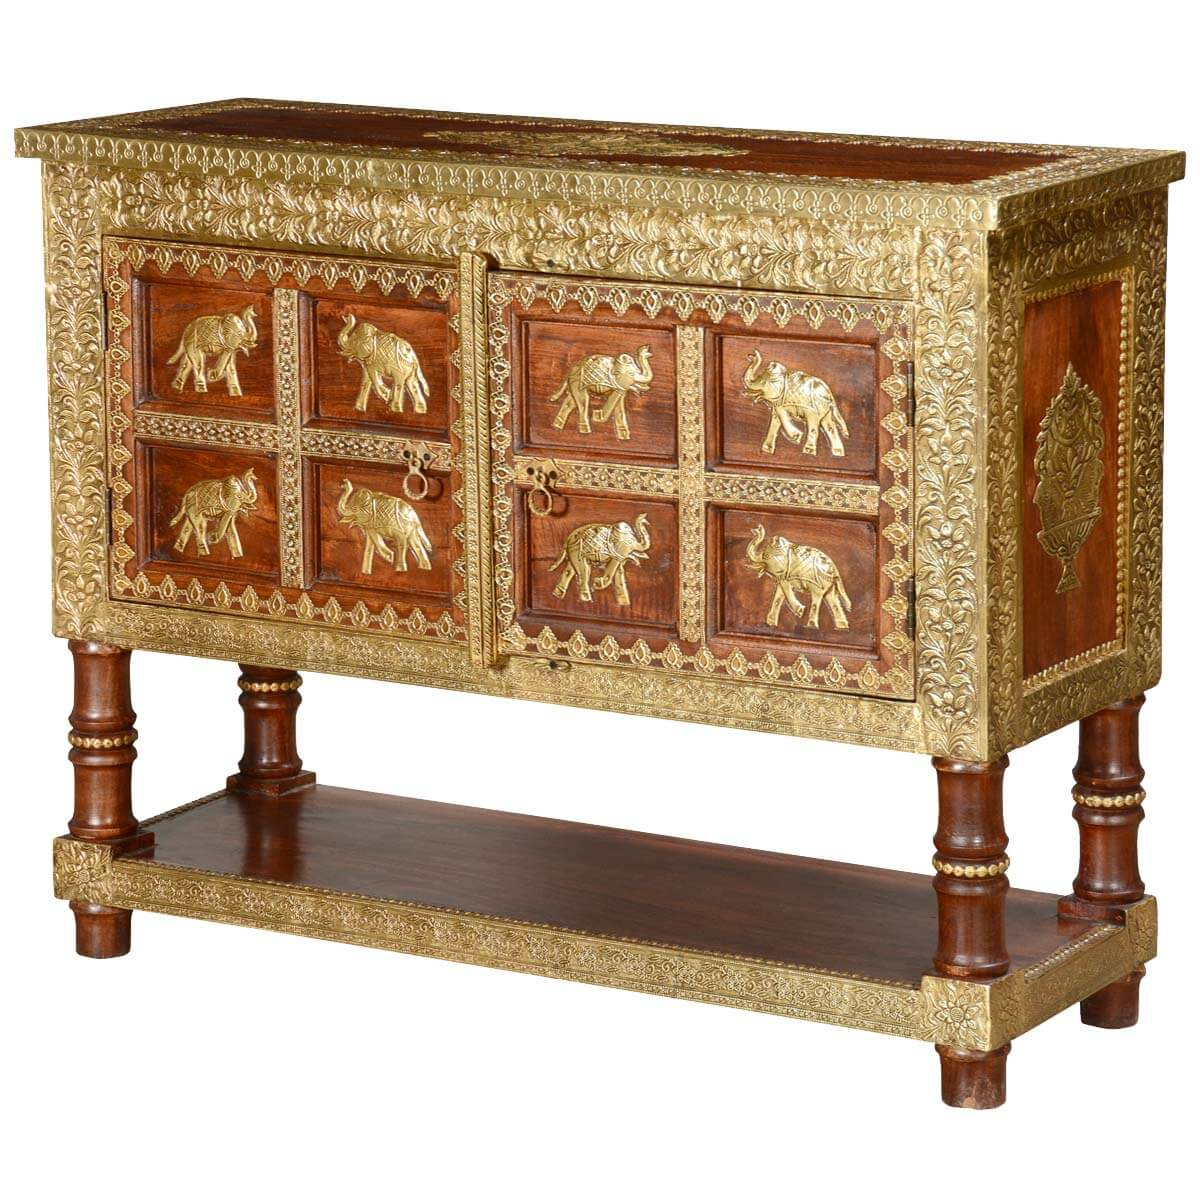 8 Golden Elephants Mango Wood & Brass Inlay Console Table Chest Within Orange Inlay Console Tables (View 2 of 30)